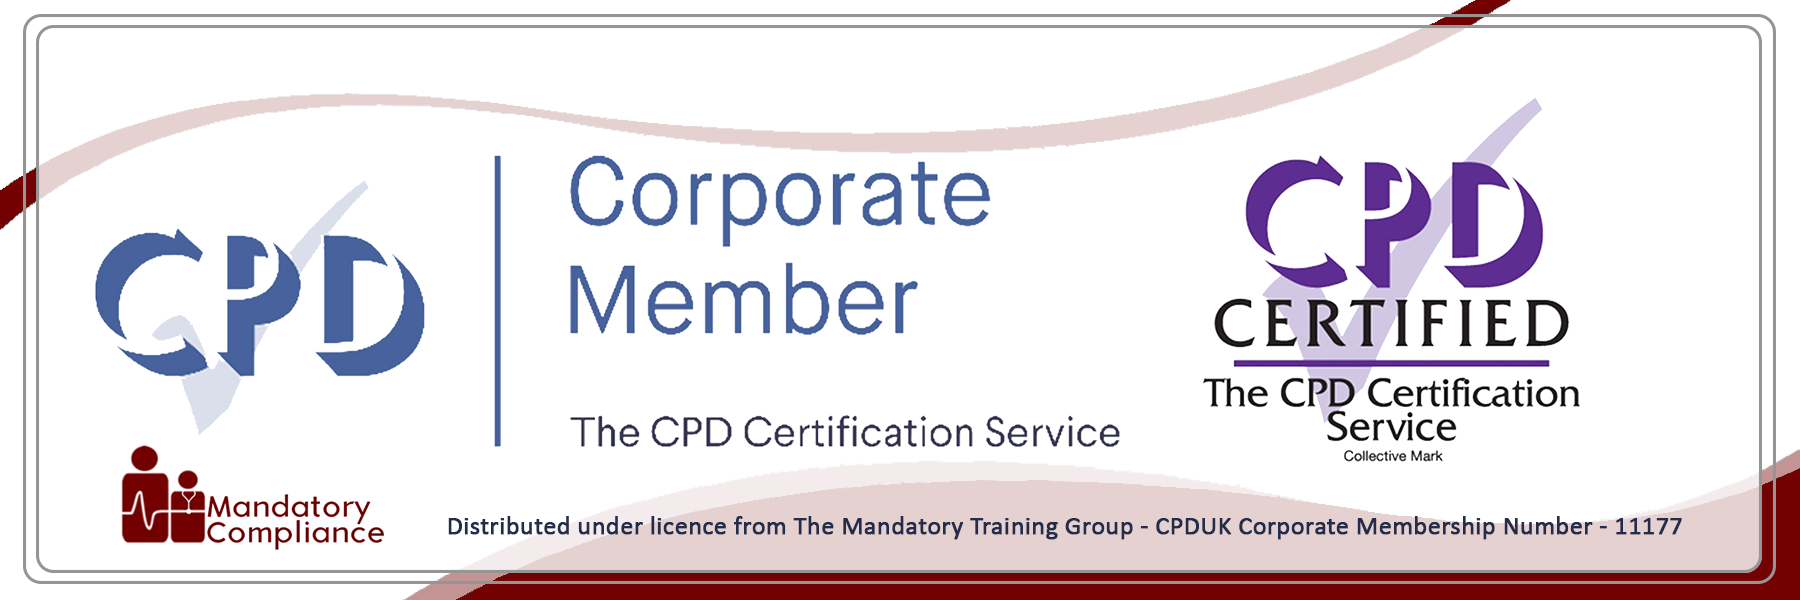 Cerebral Palsy Awareness - Level 2 - Online Training Course - CPDUK Accredited - Mandatory Compliance UK -